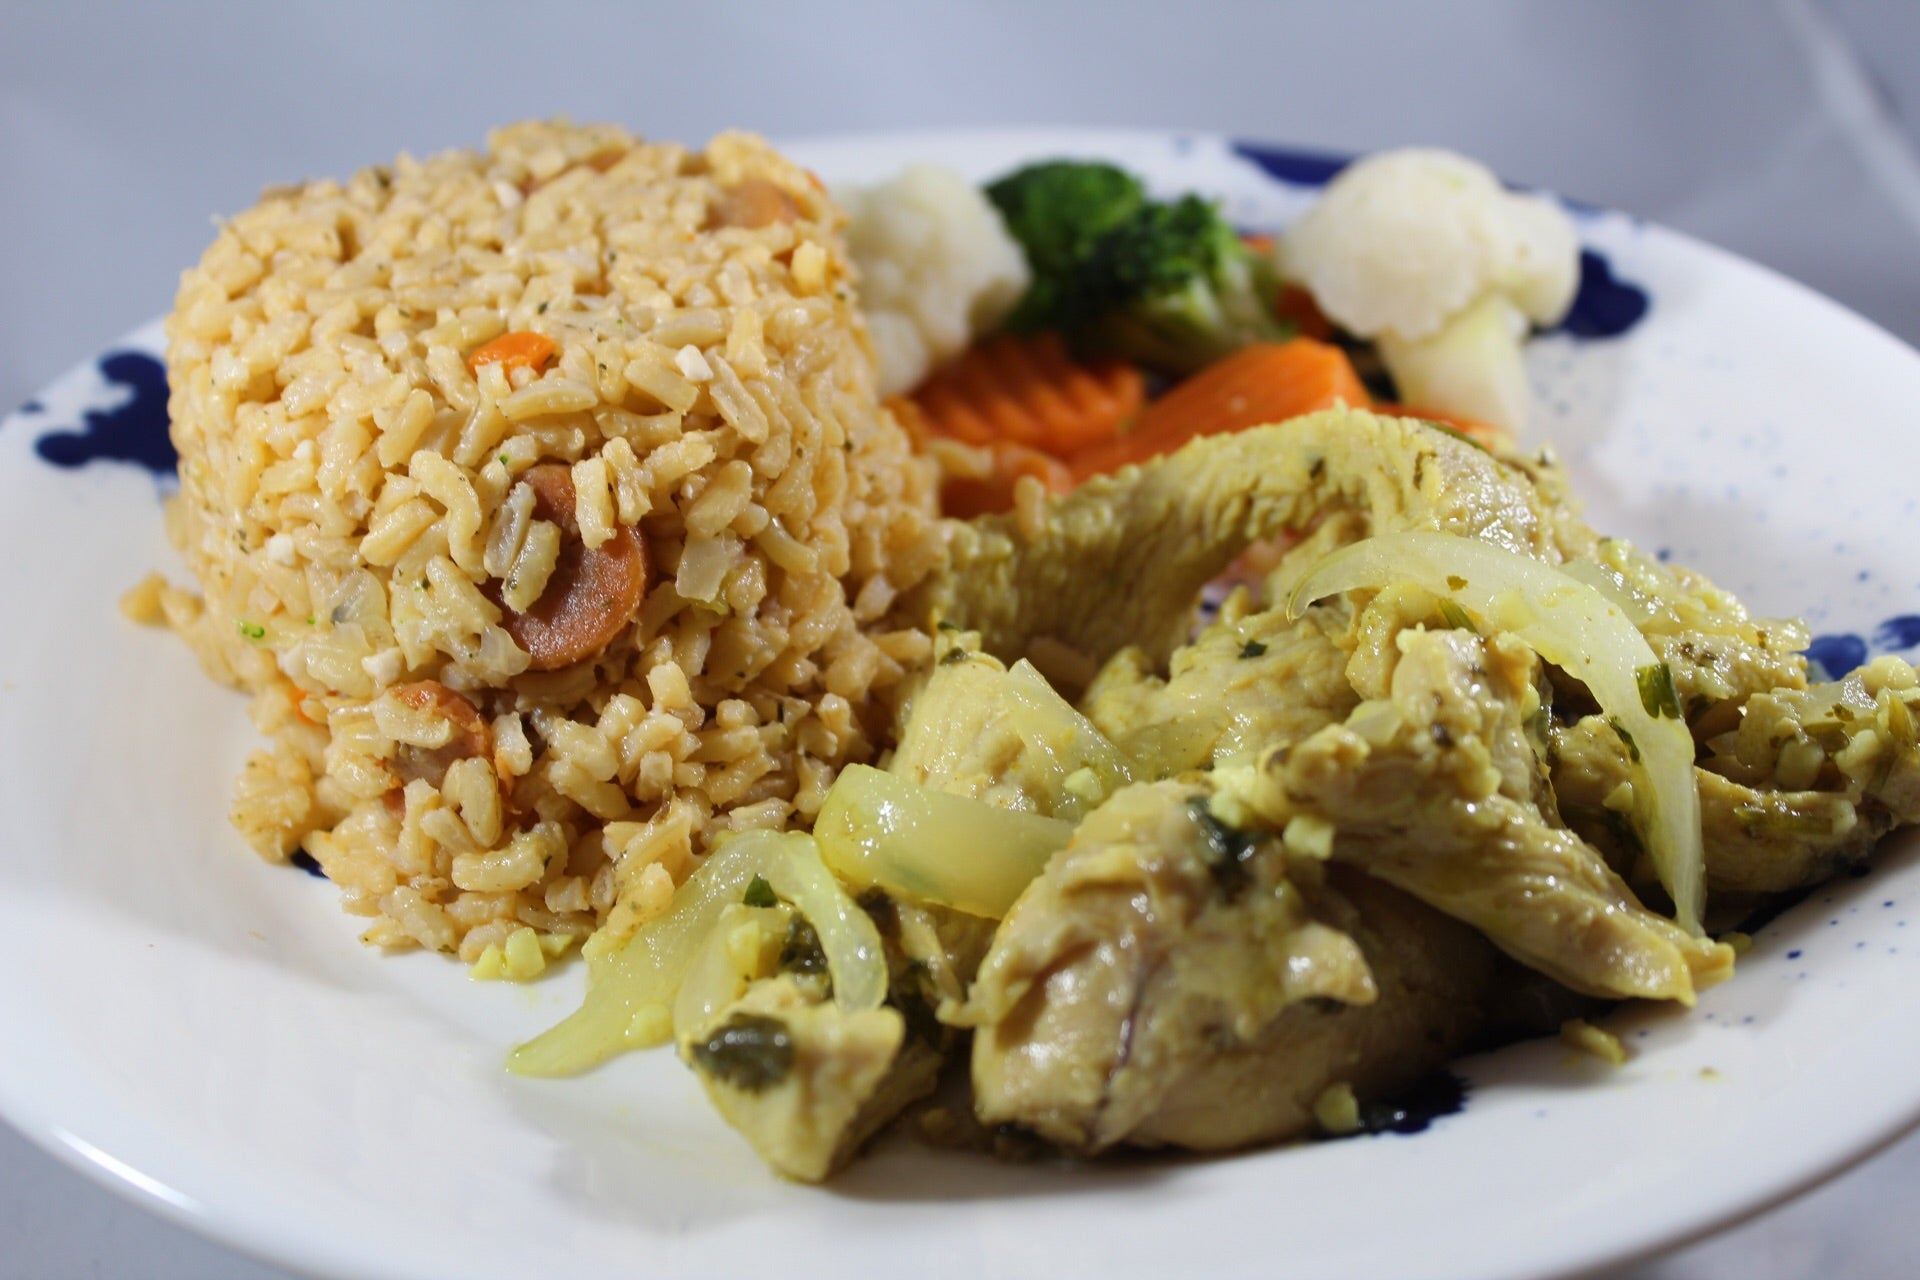 Brown Rice with Cabbage, Carrots and Turkey in Garlic Sauce / Arroz Integral con Repollo y Zanahoria y Pavo al Ajillo